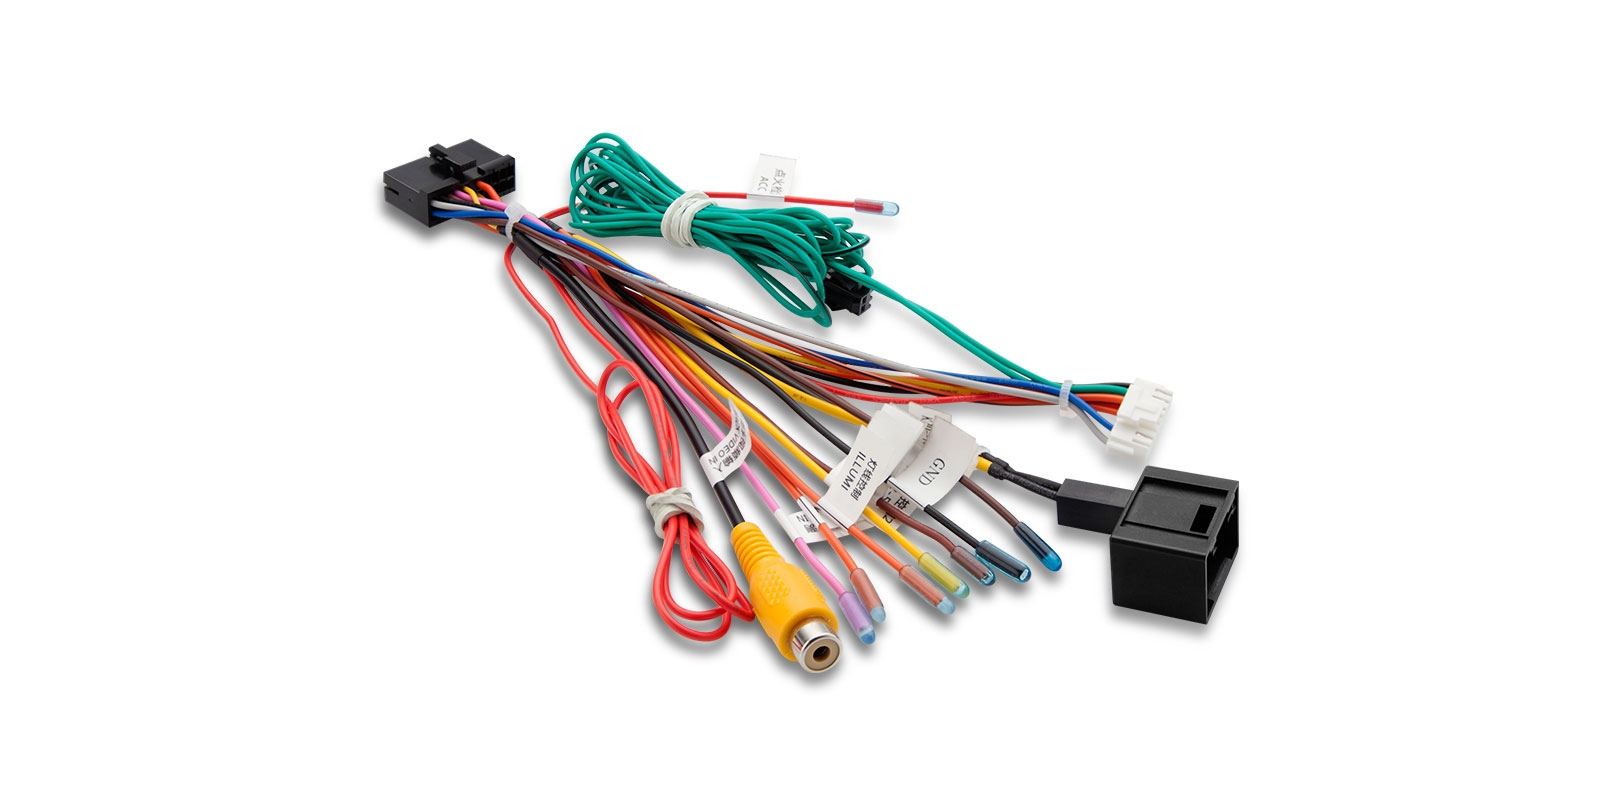 Iso Wiring Harness For Xtrons Mercedes Benz E Cls Series Units Chrysler Adapter Prevnext